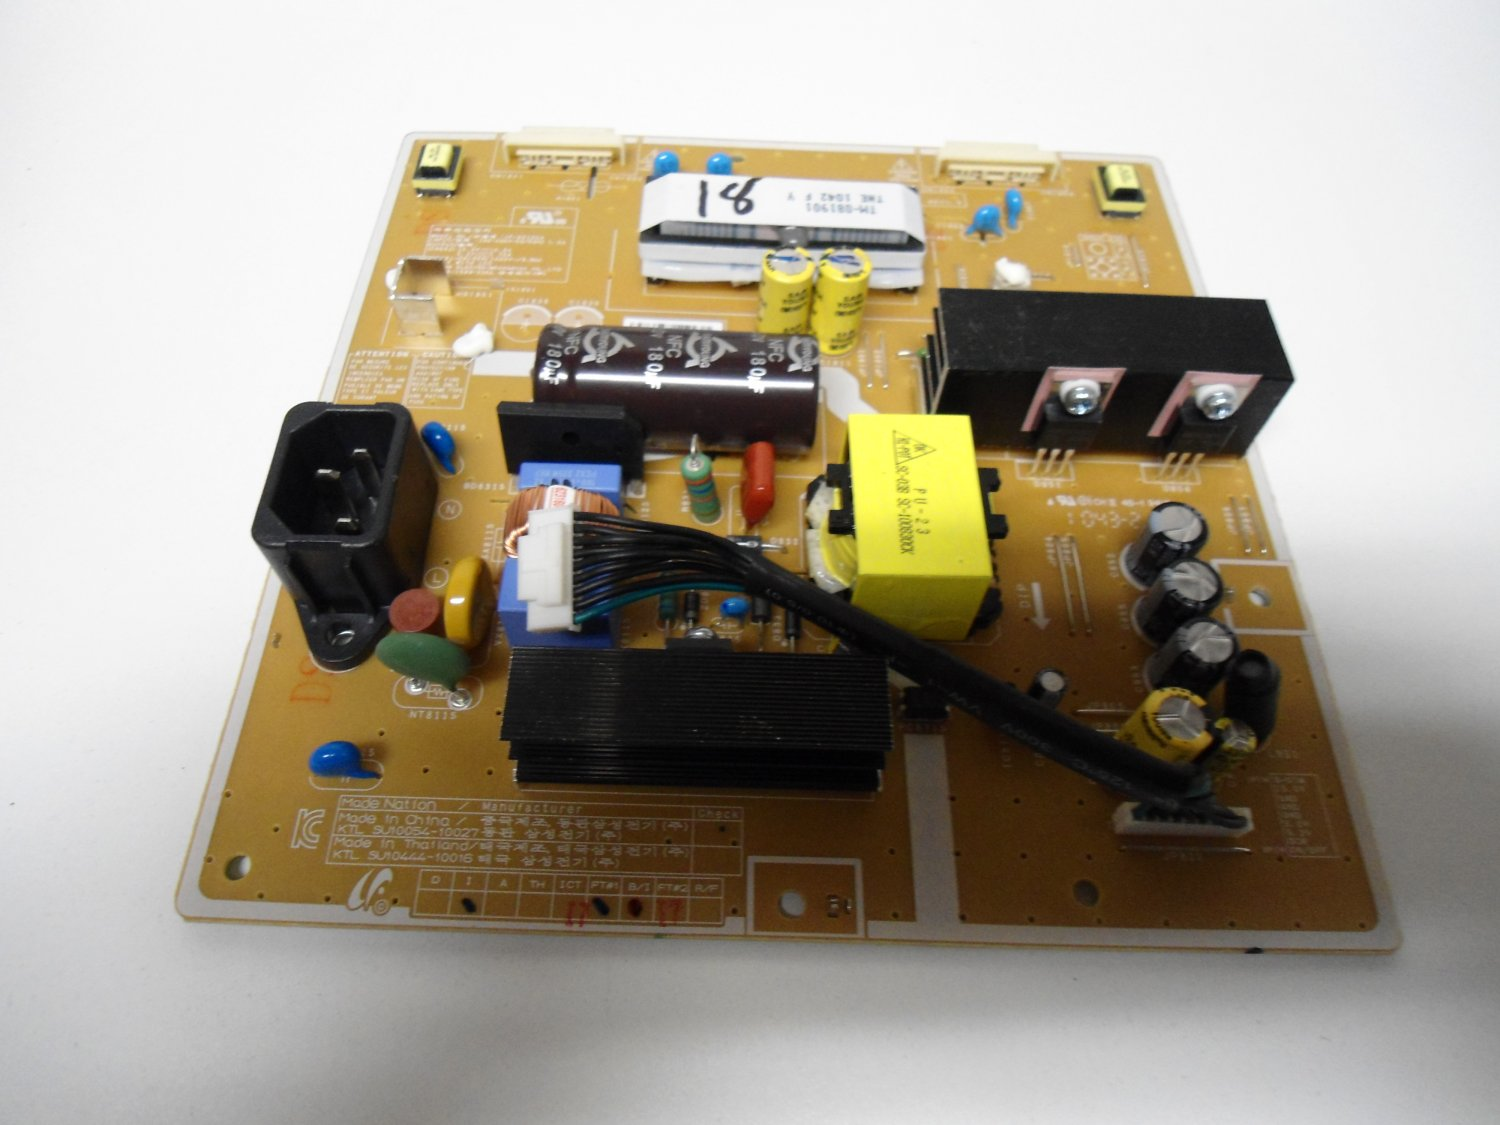 Samsung BN44-00392A Power Supply / Backlight Inverter SOLD OUT